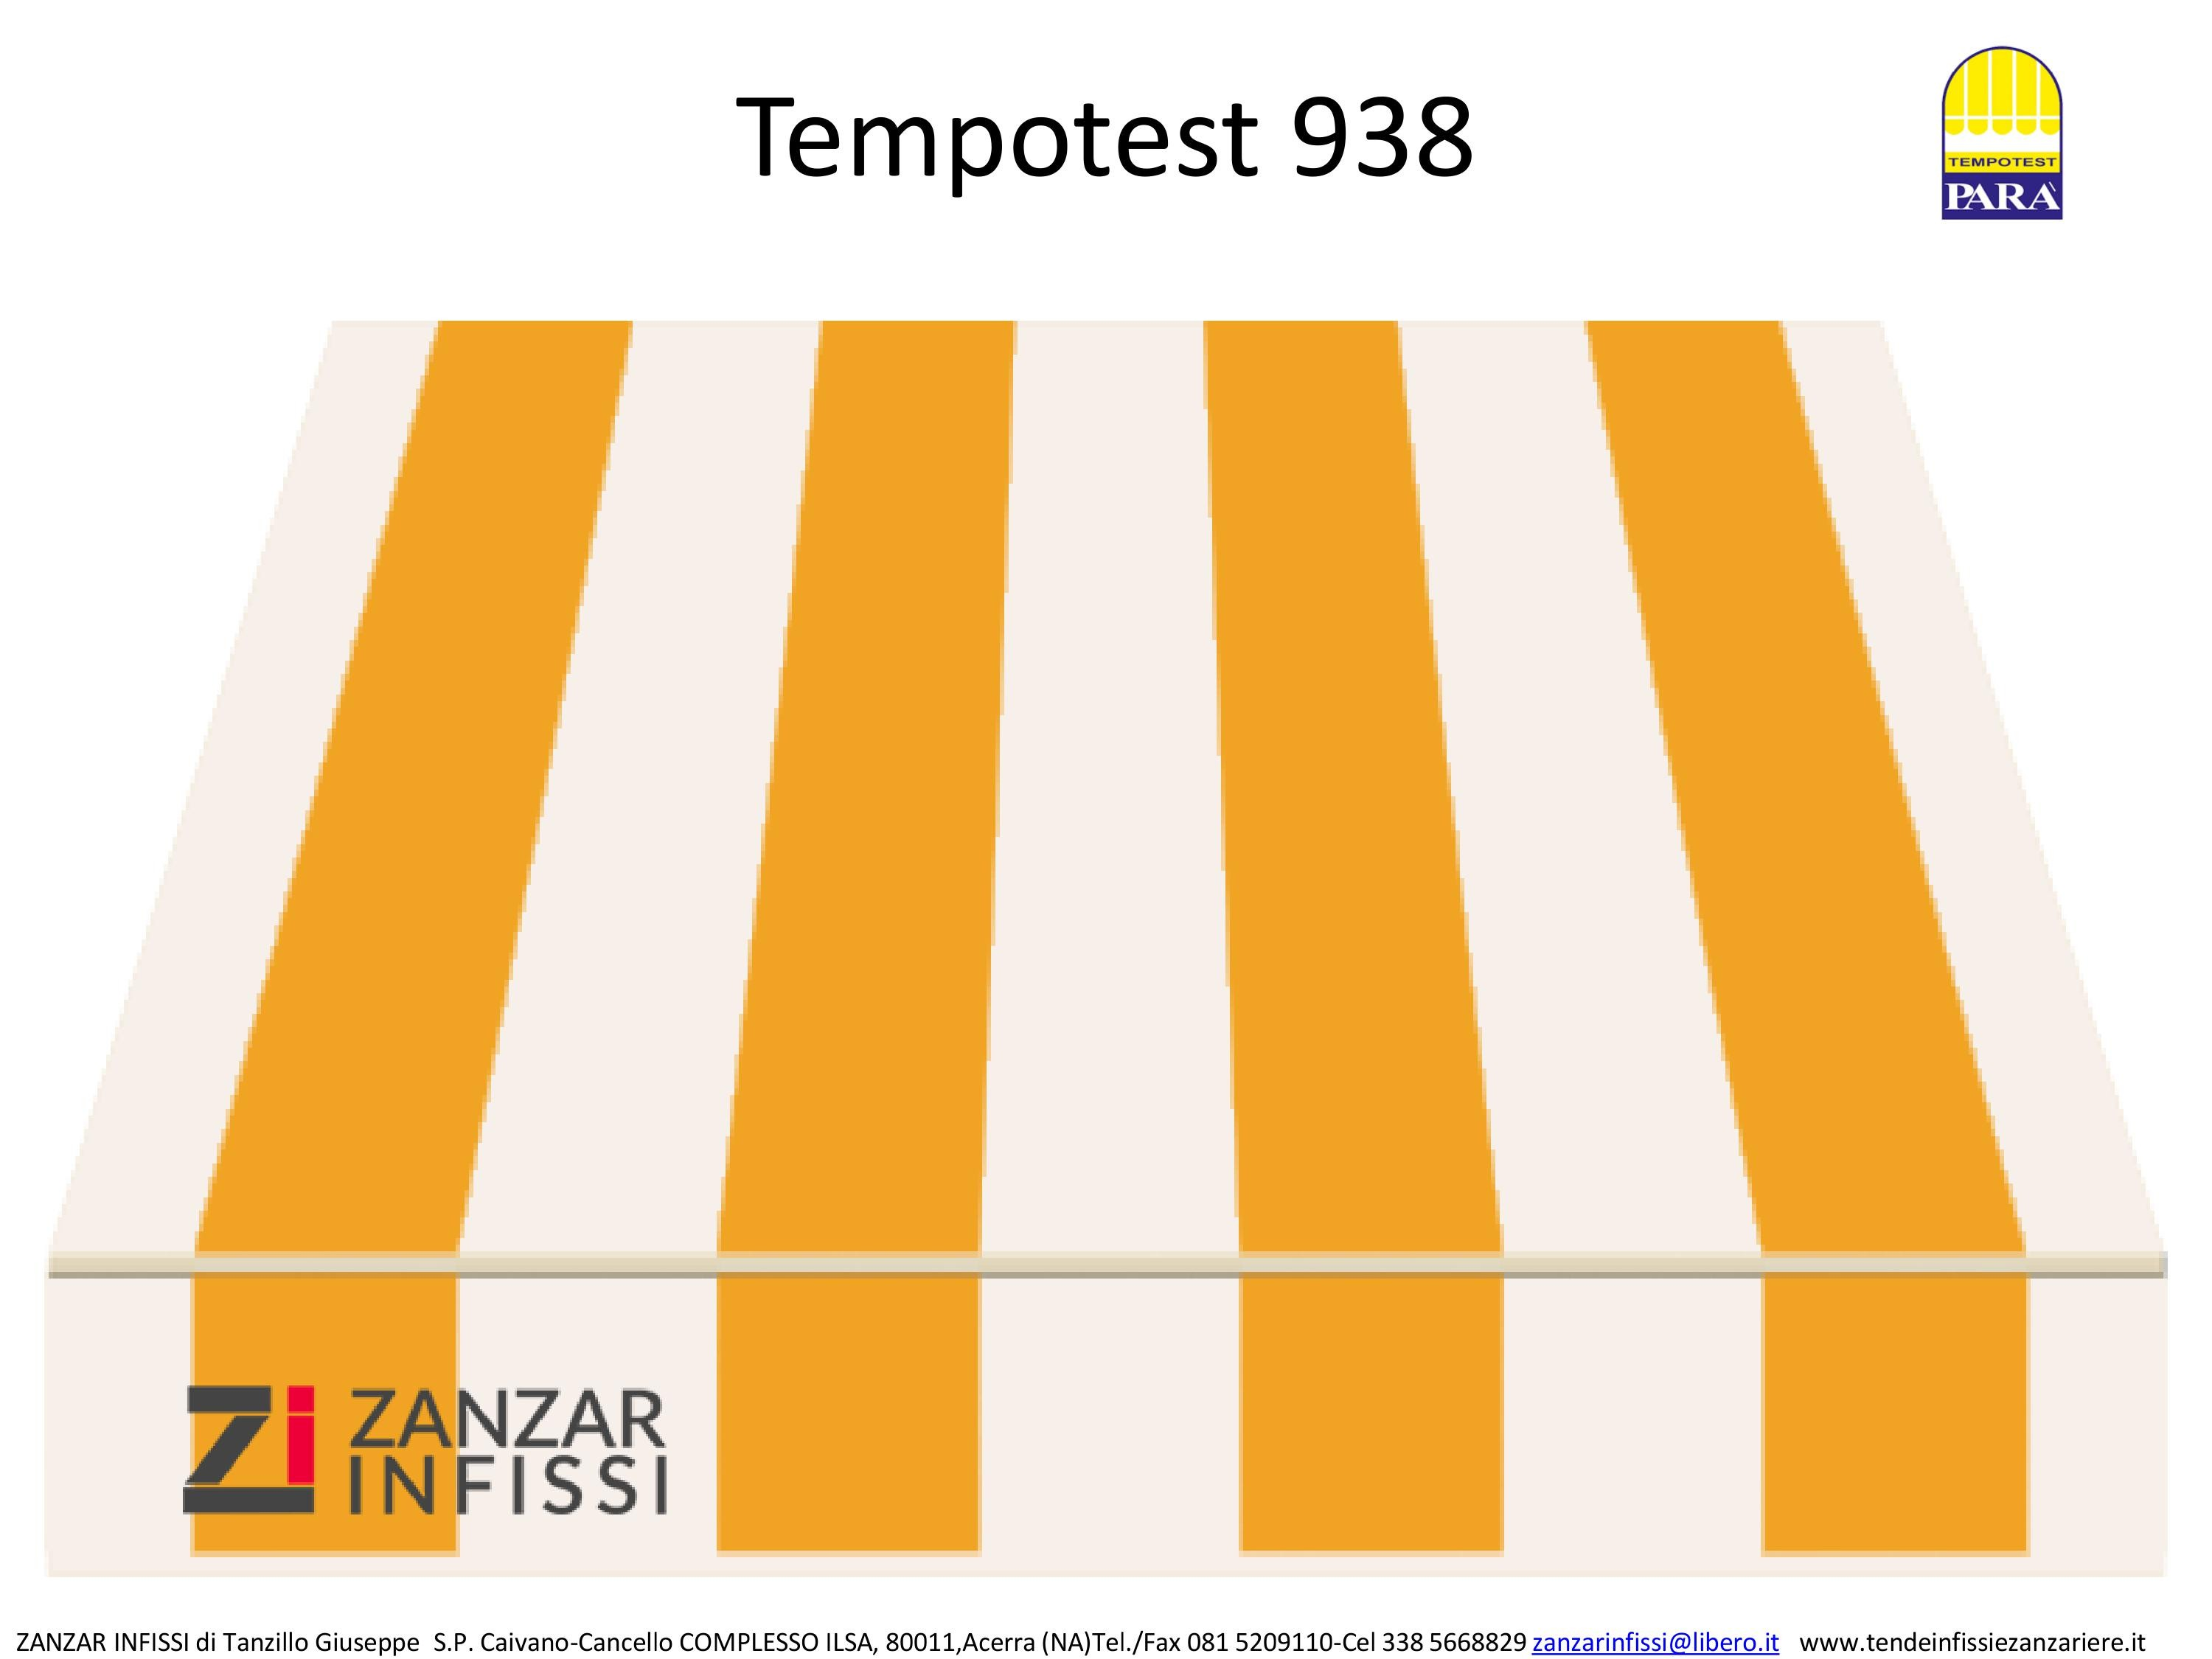 Tempotest 938